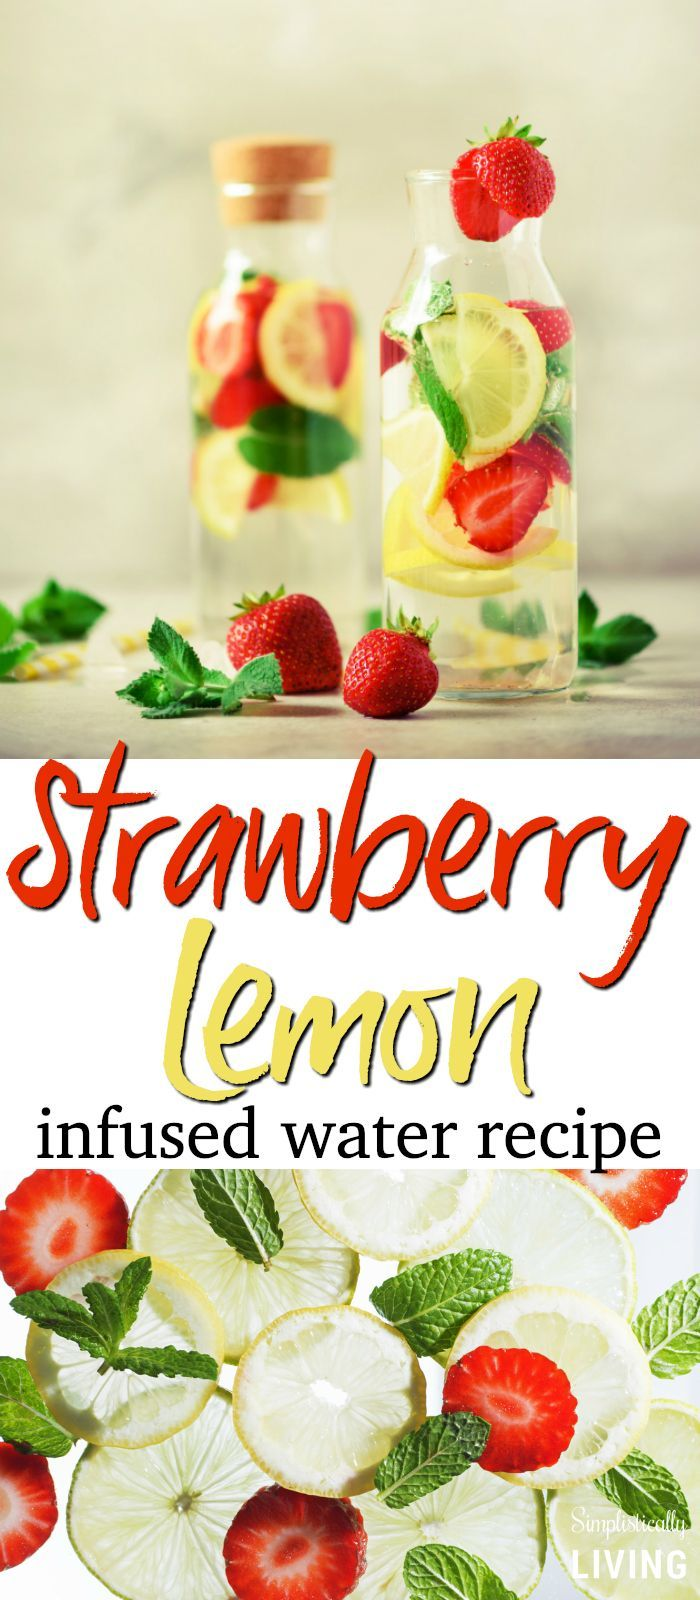 Strawberry Lemon Infused Water Recipe